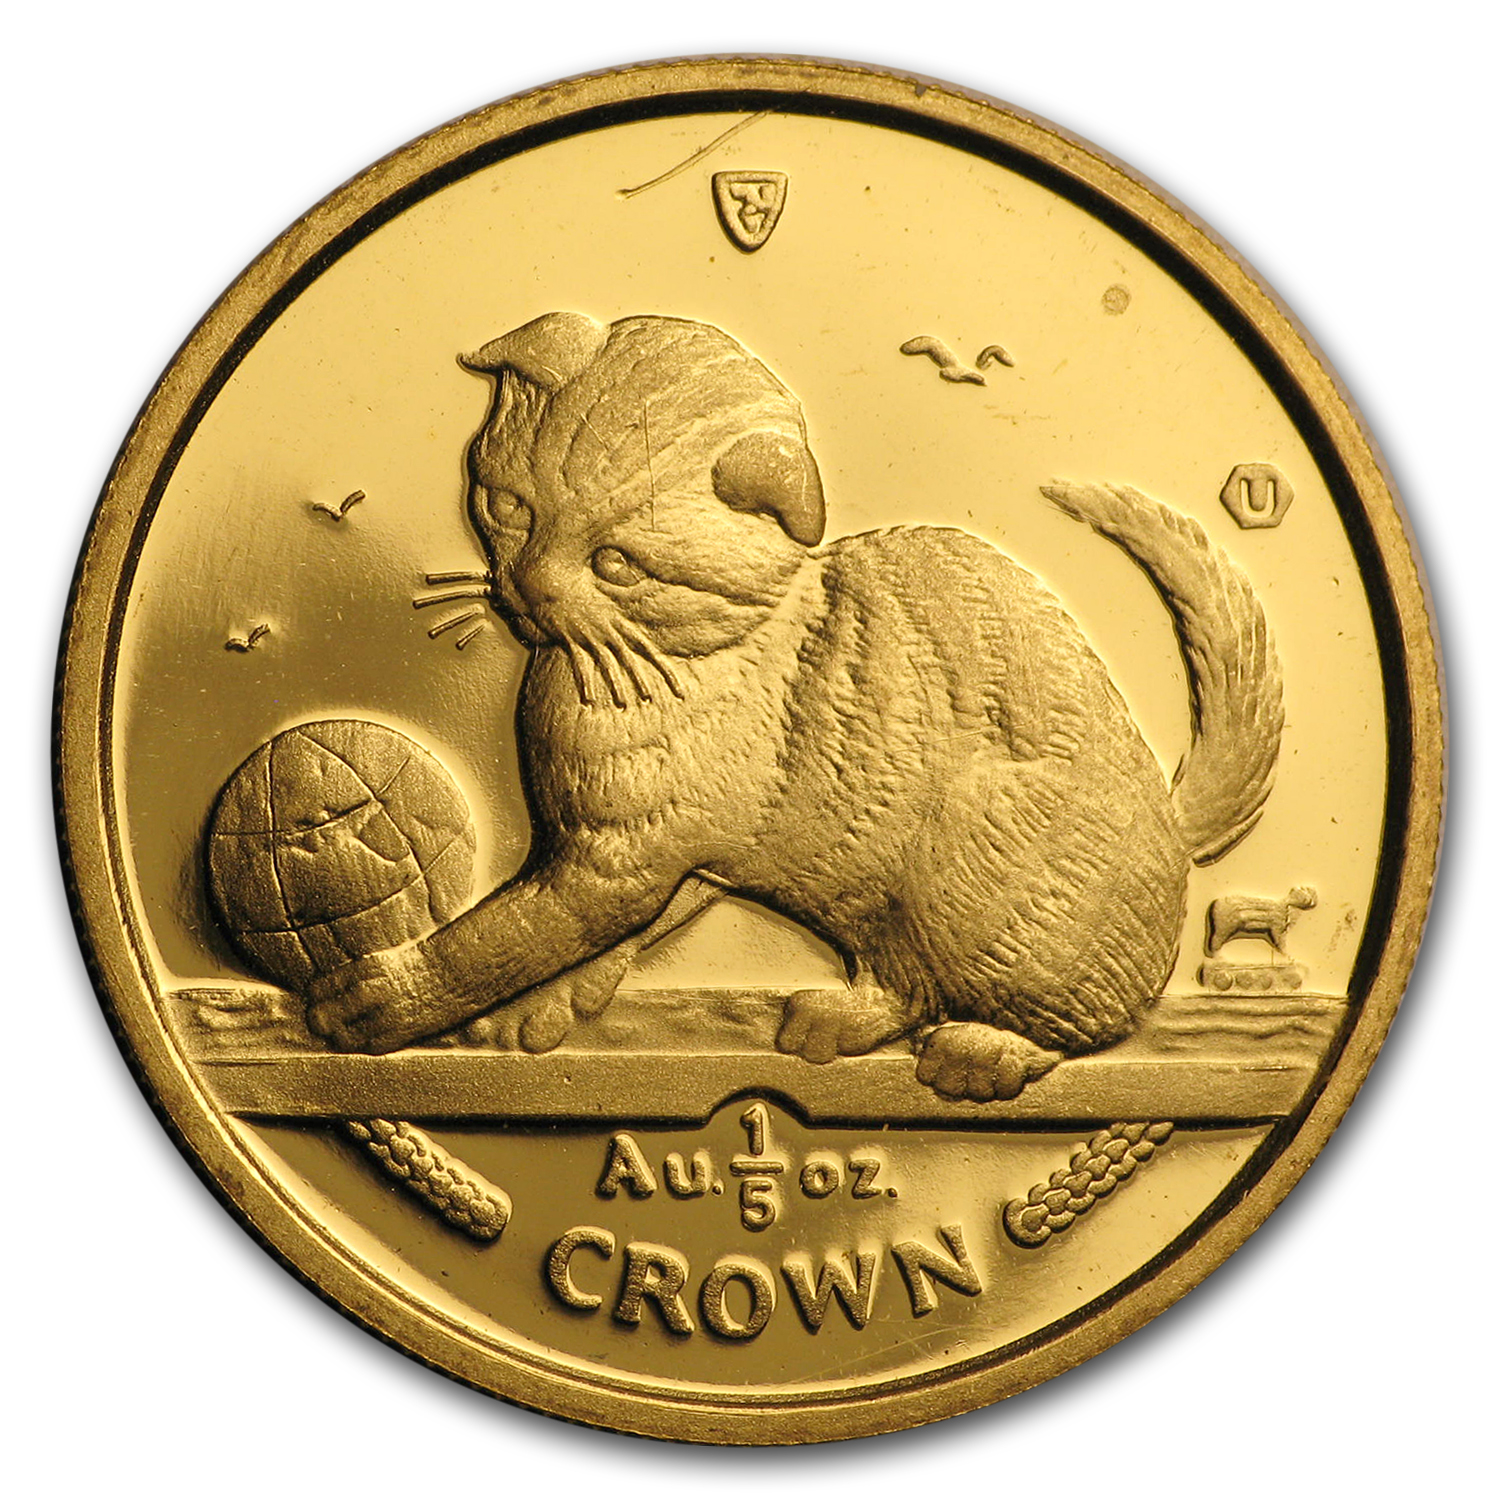 2000 Isle of Man 1/5 oz Gold Scottish Fold Kitten